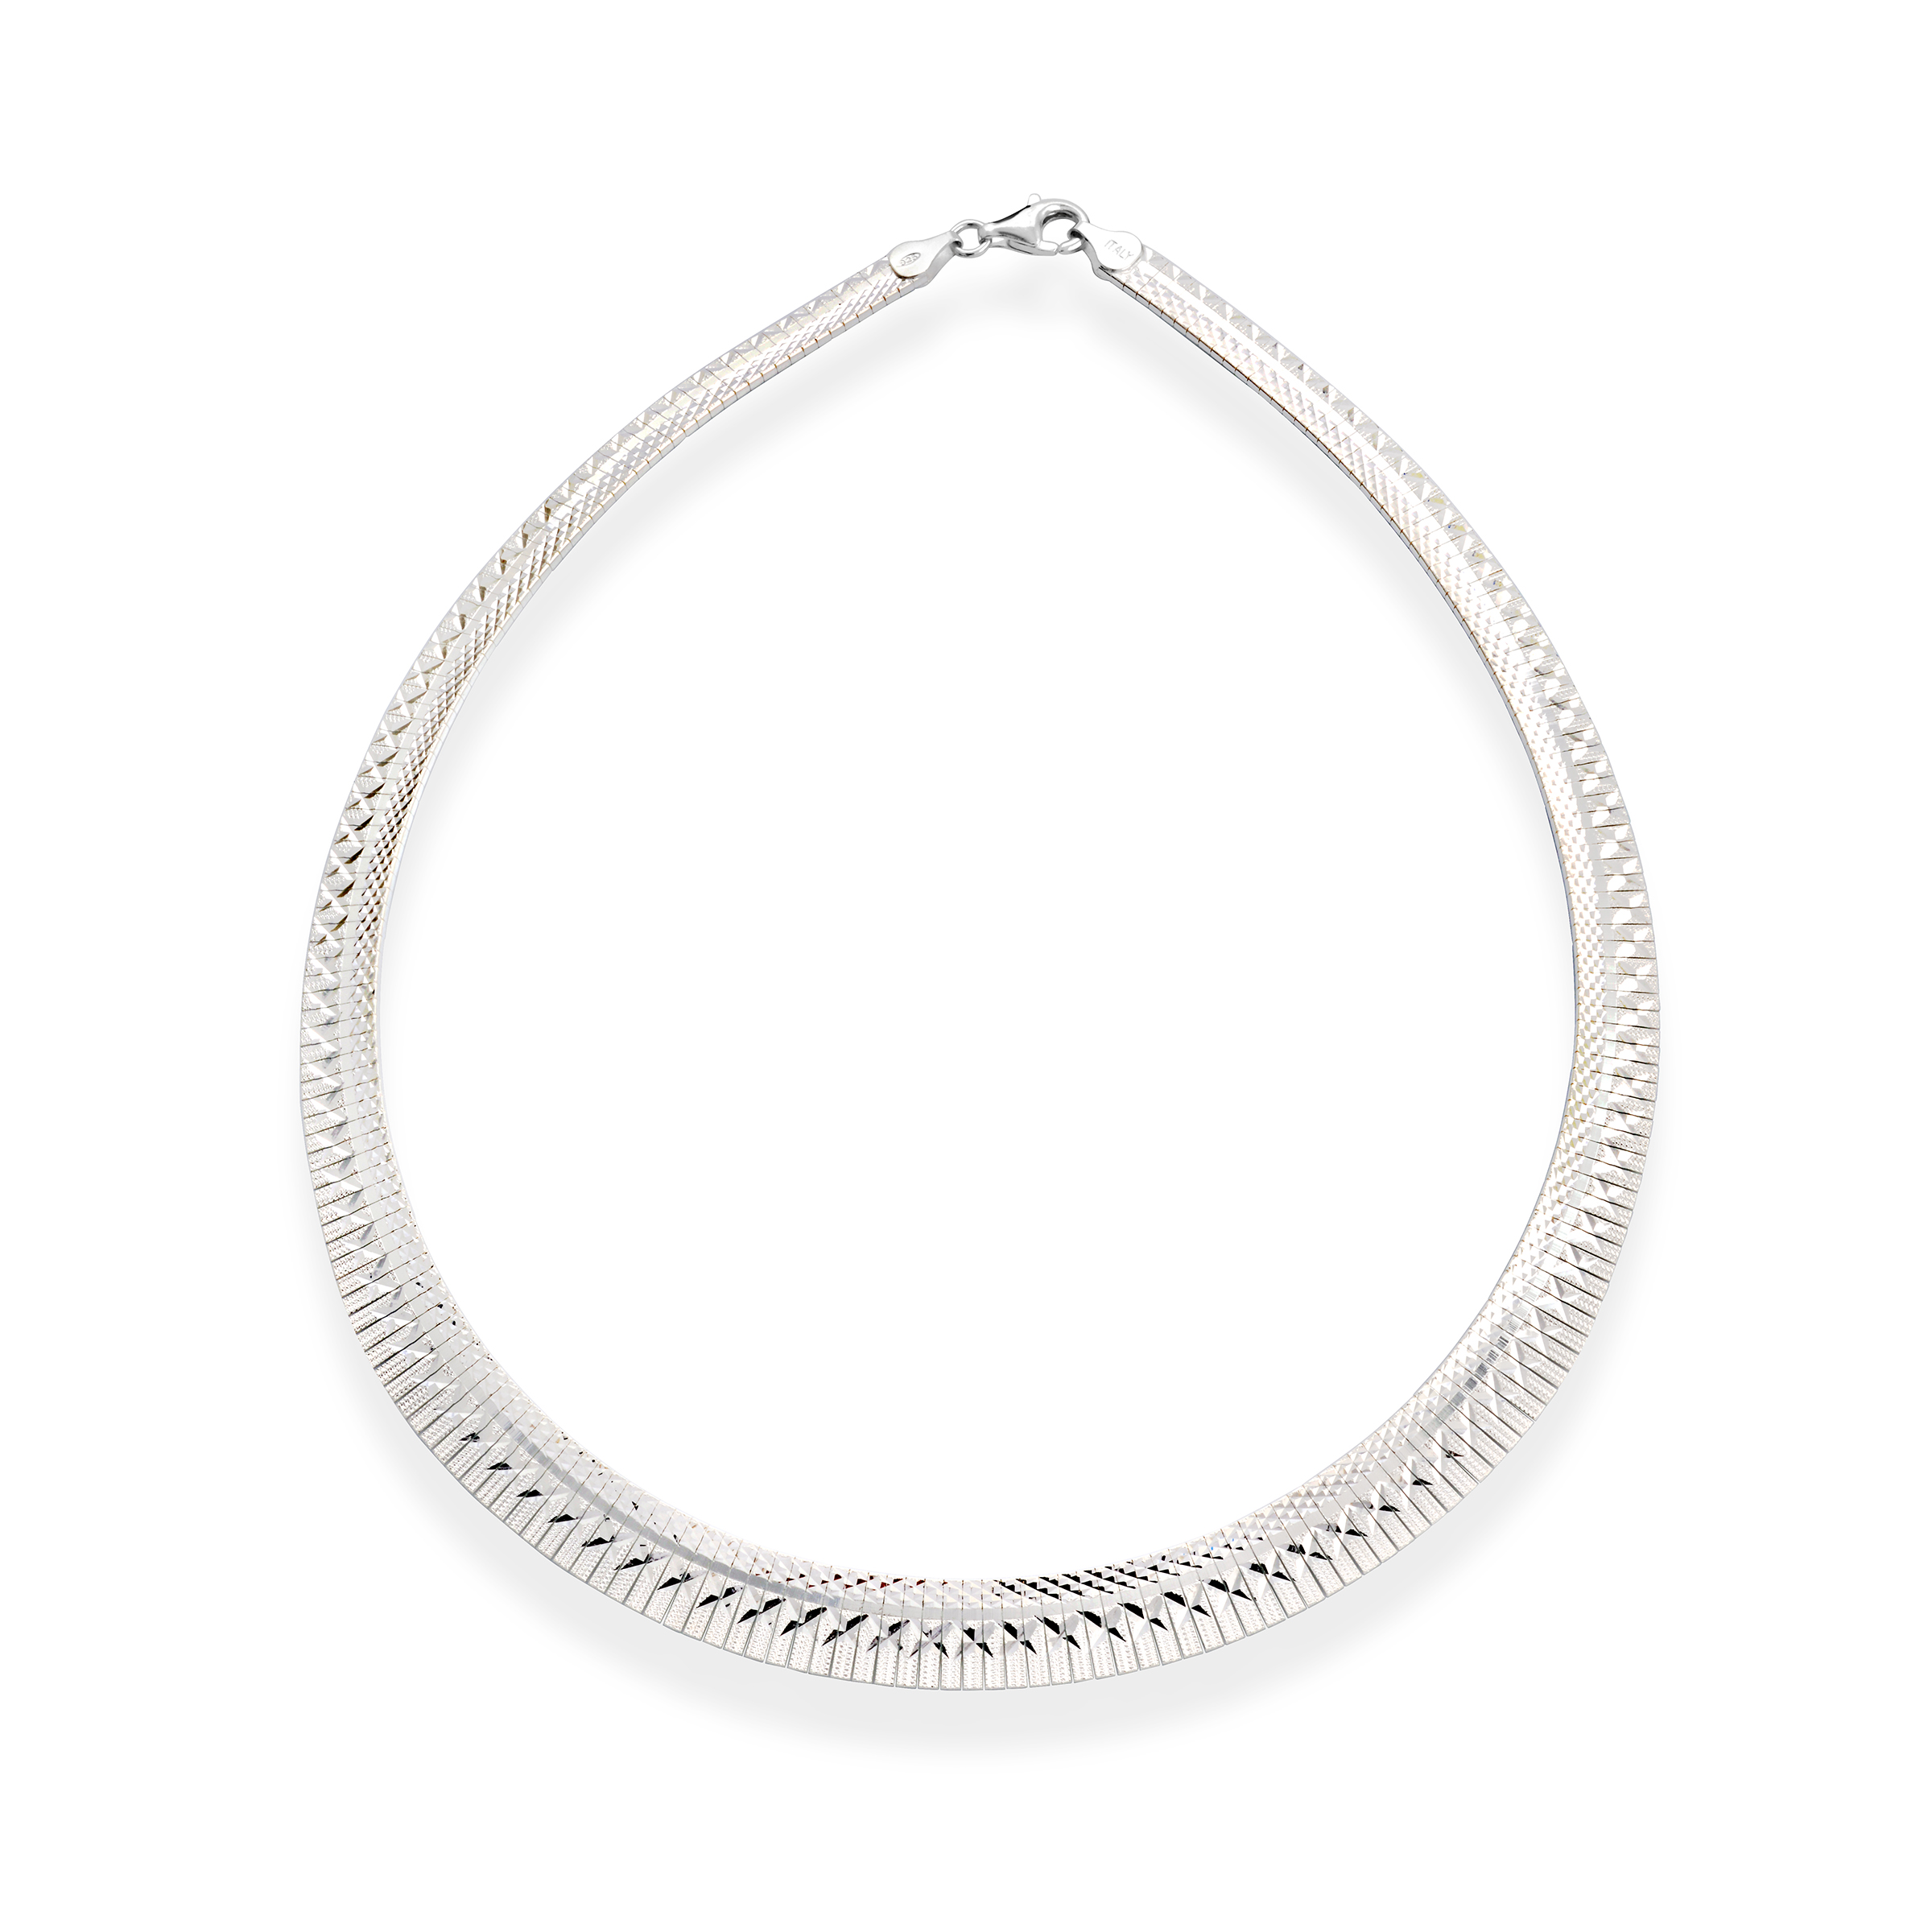 Cleopatra necklace - Sterling silver